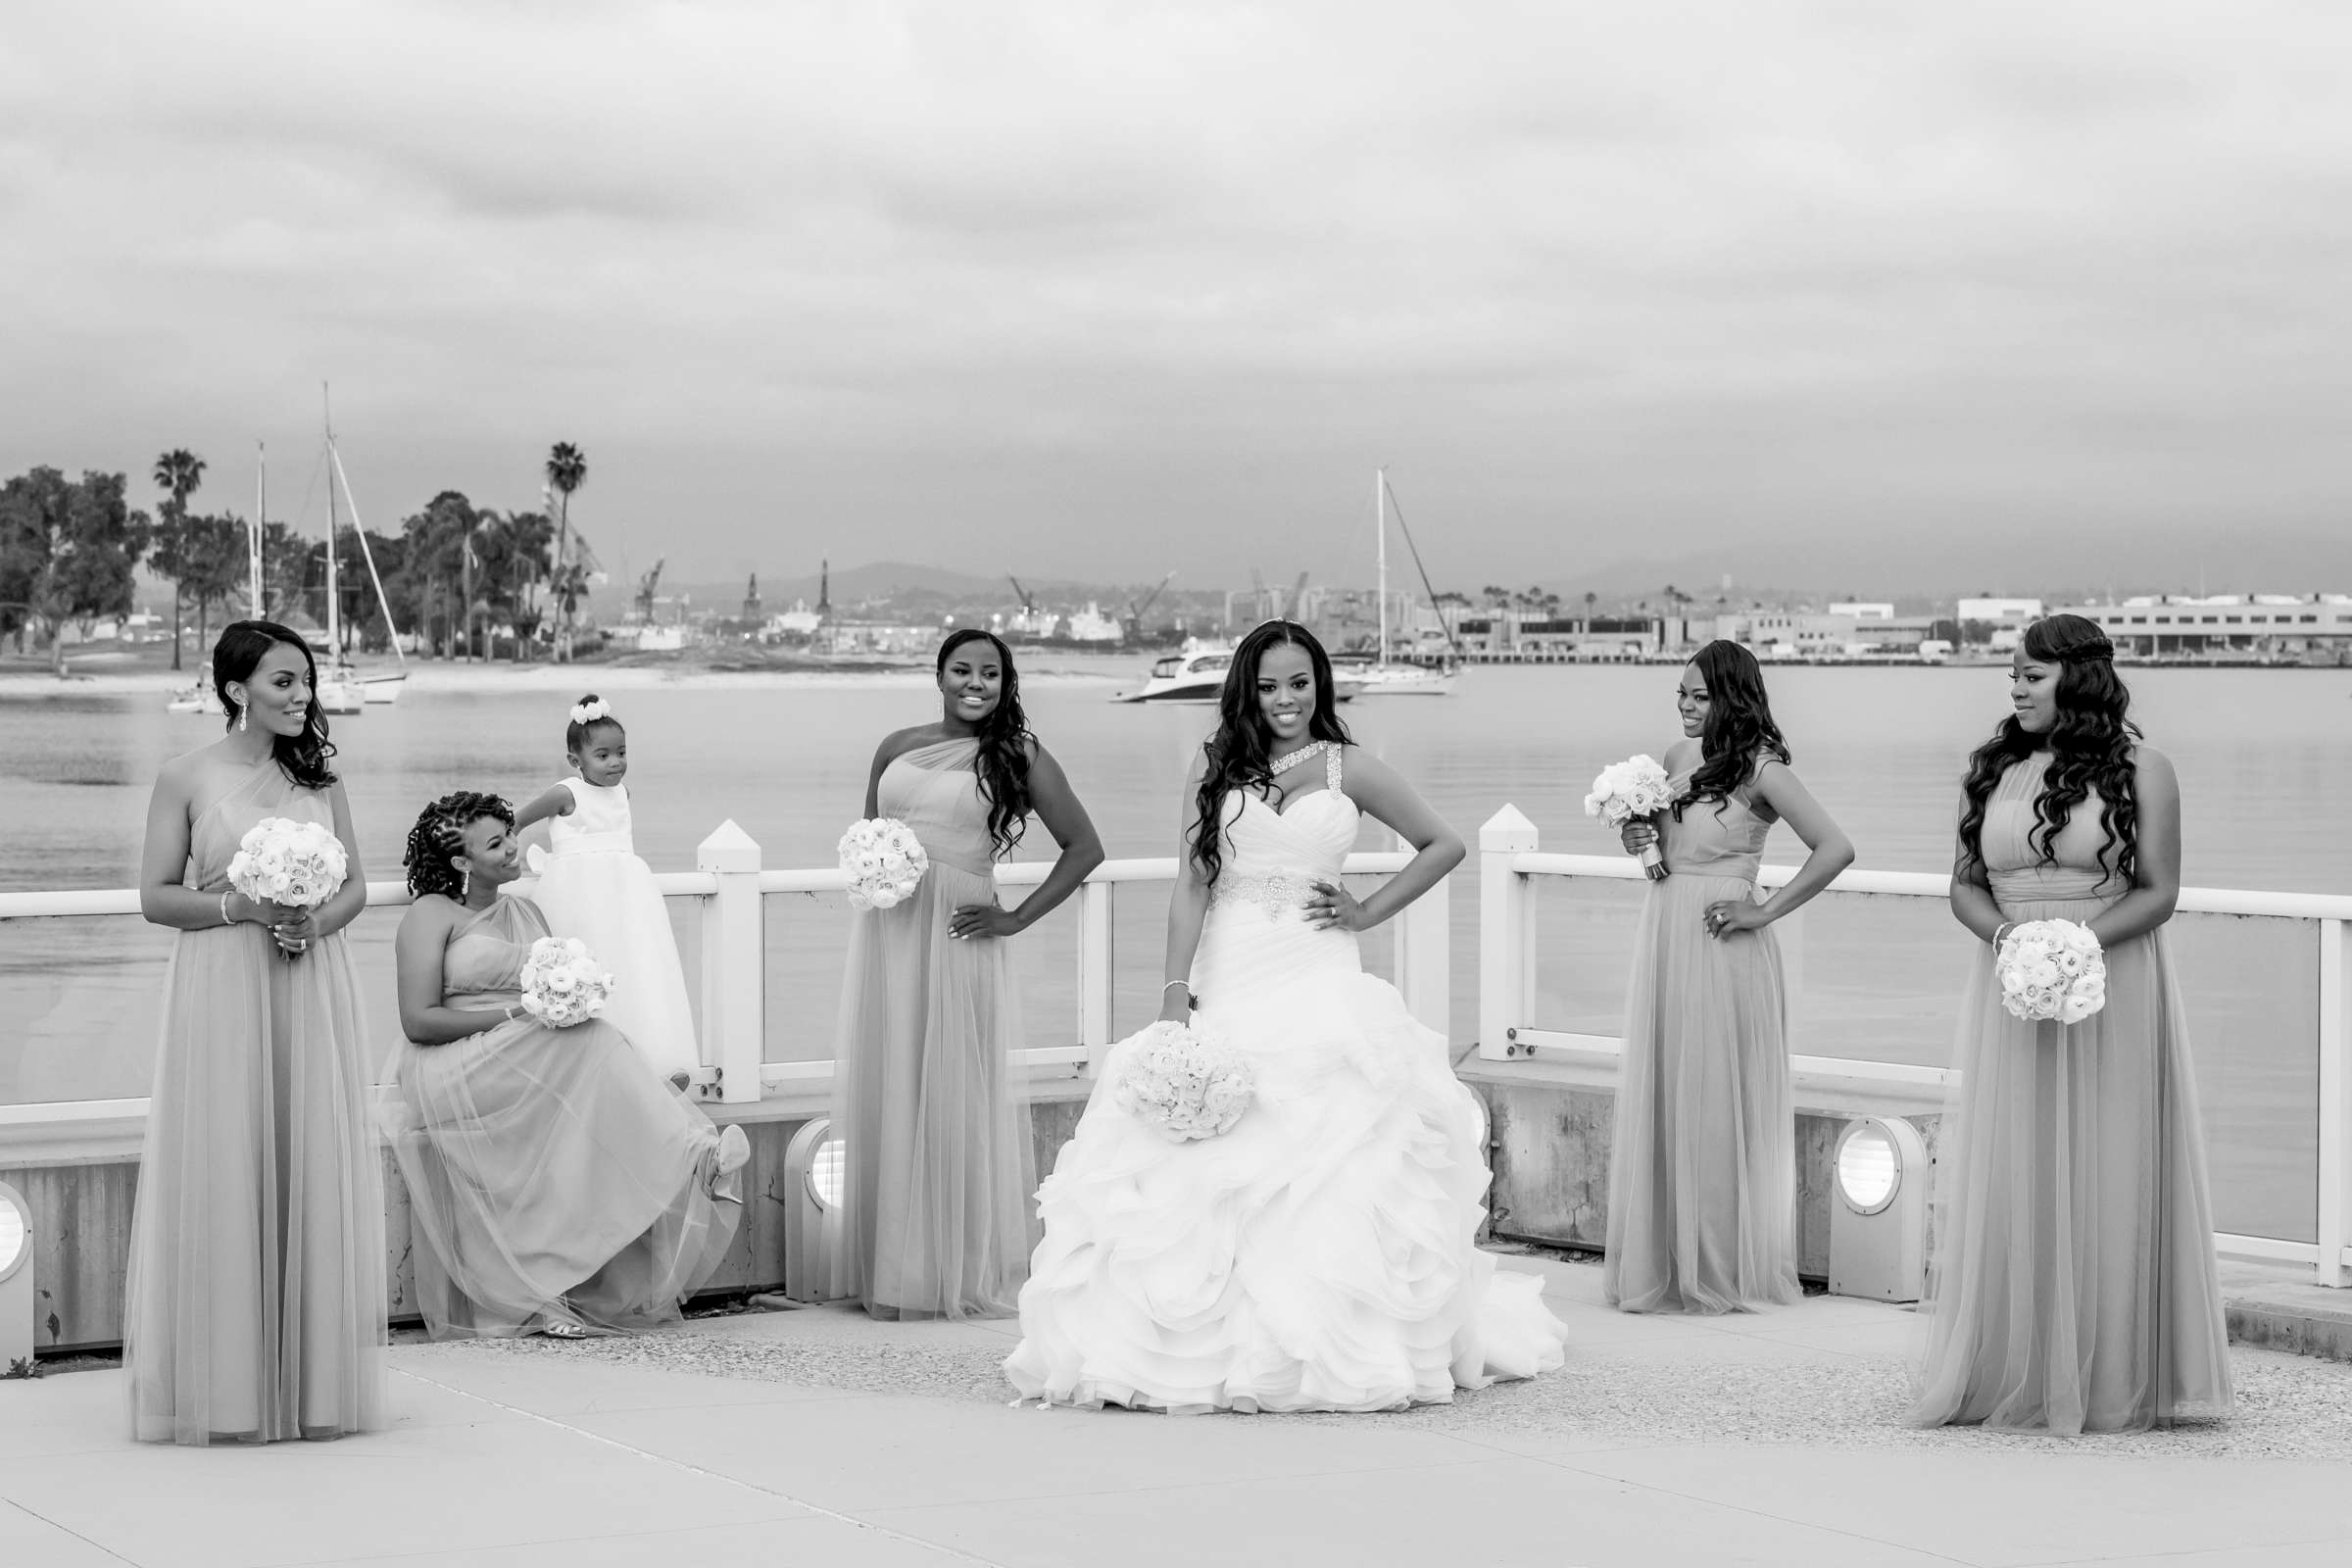 Coronado Community Center Wedding coordinated by First Comes Love Weddings & Events, Nikia and Charles Wedding Photo #29 by True Photography